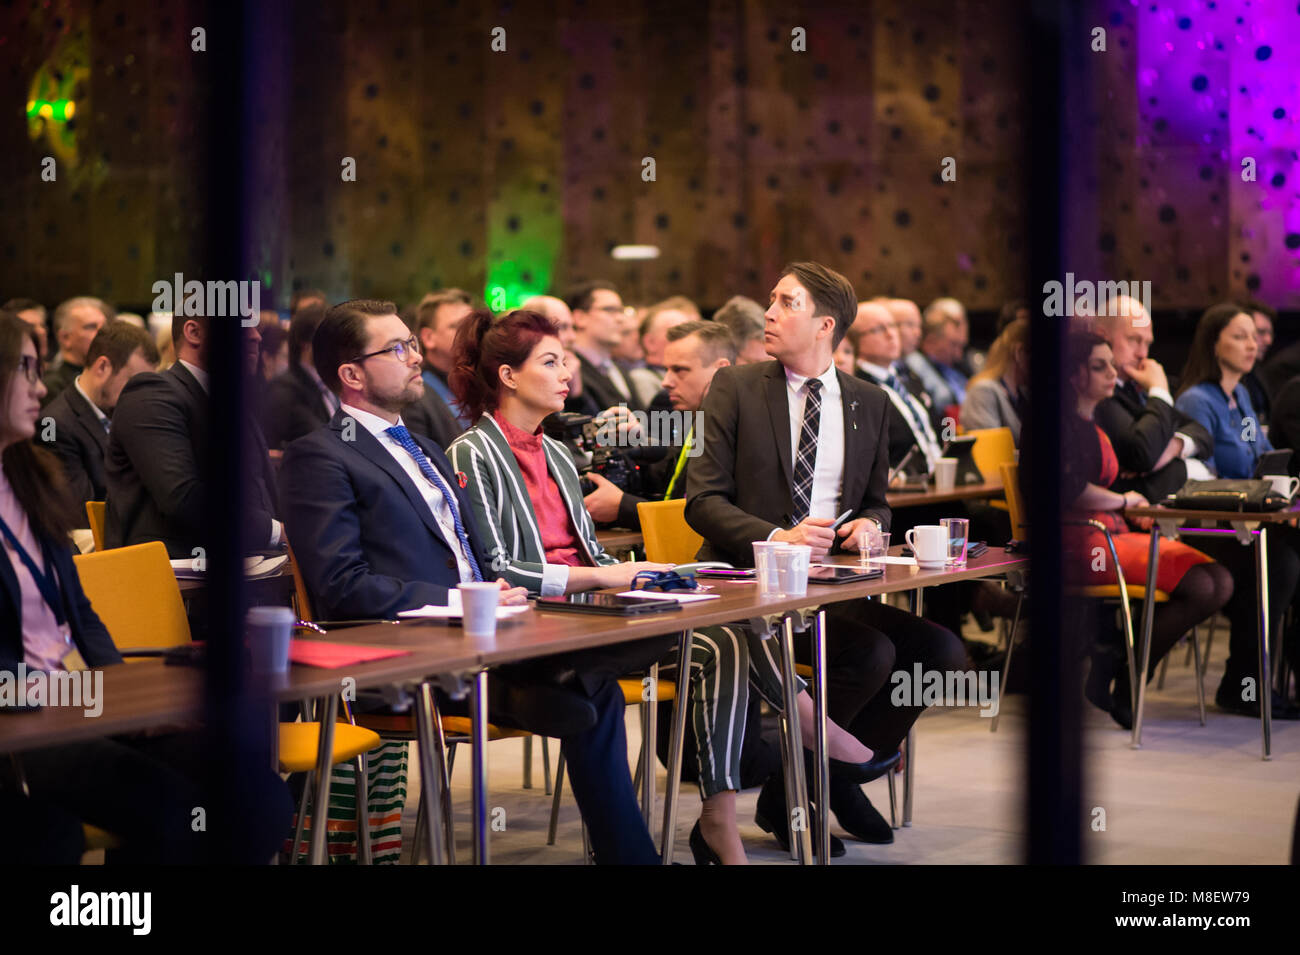 Stockholm, Sweden, March 17, 2018. Sweden Democrats (SD) Election Conference 2018. Party Leader Jimmie Akesson, - Stock Image